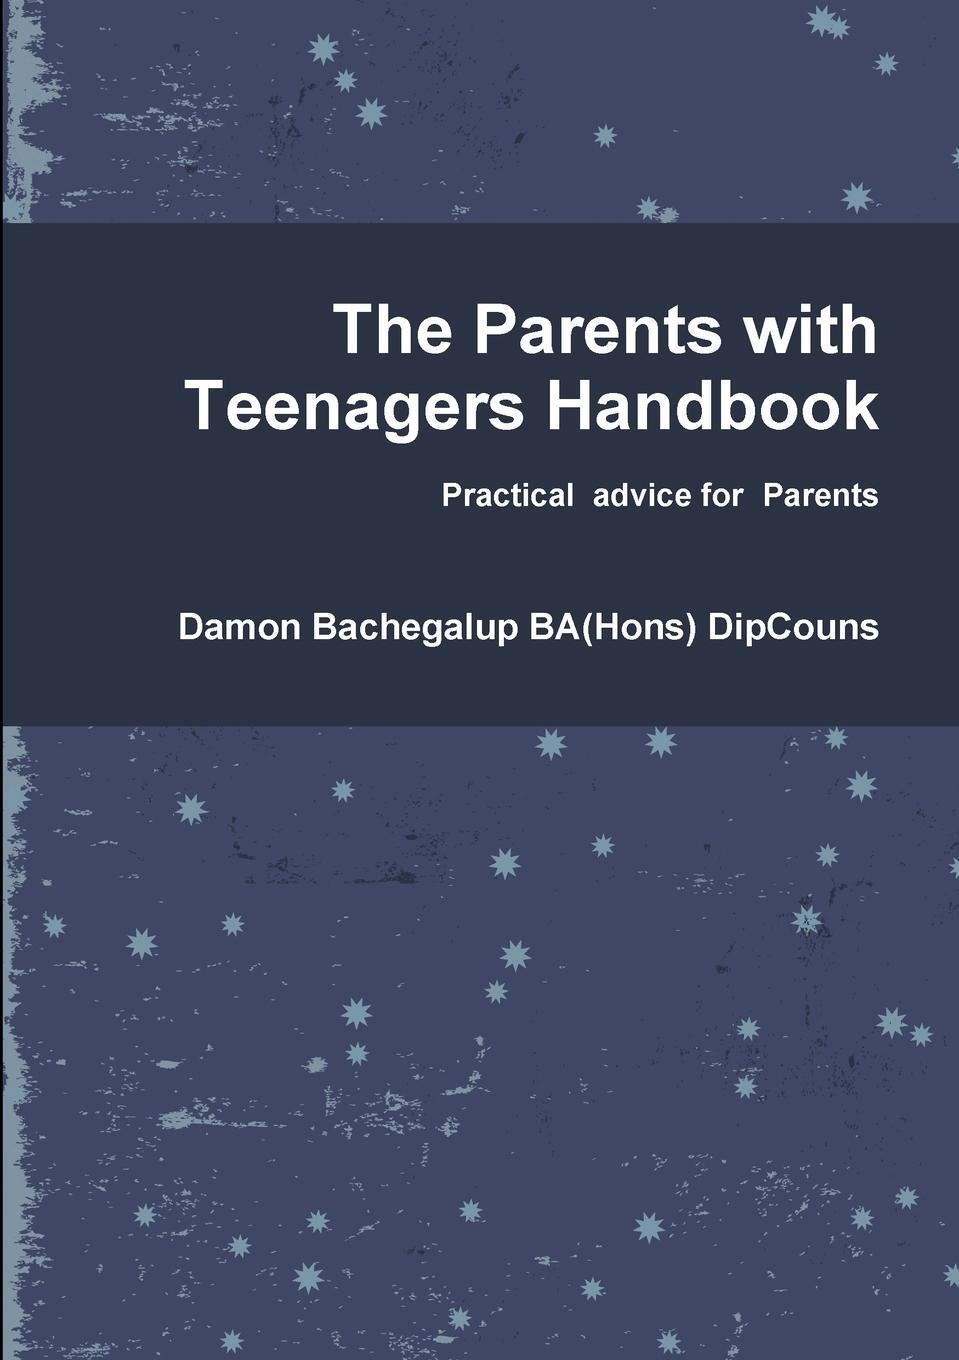 The Parents with Teenagers Handbook